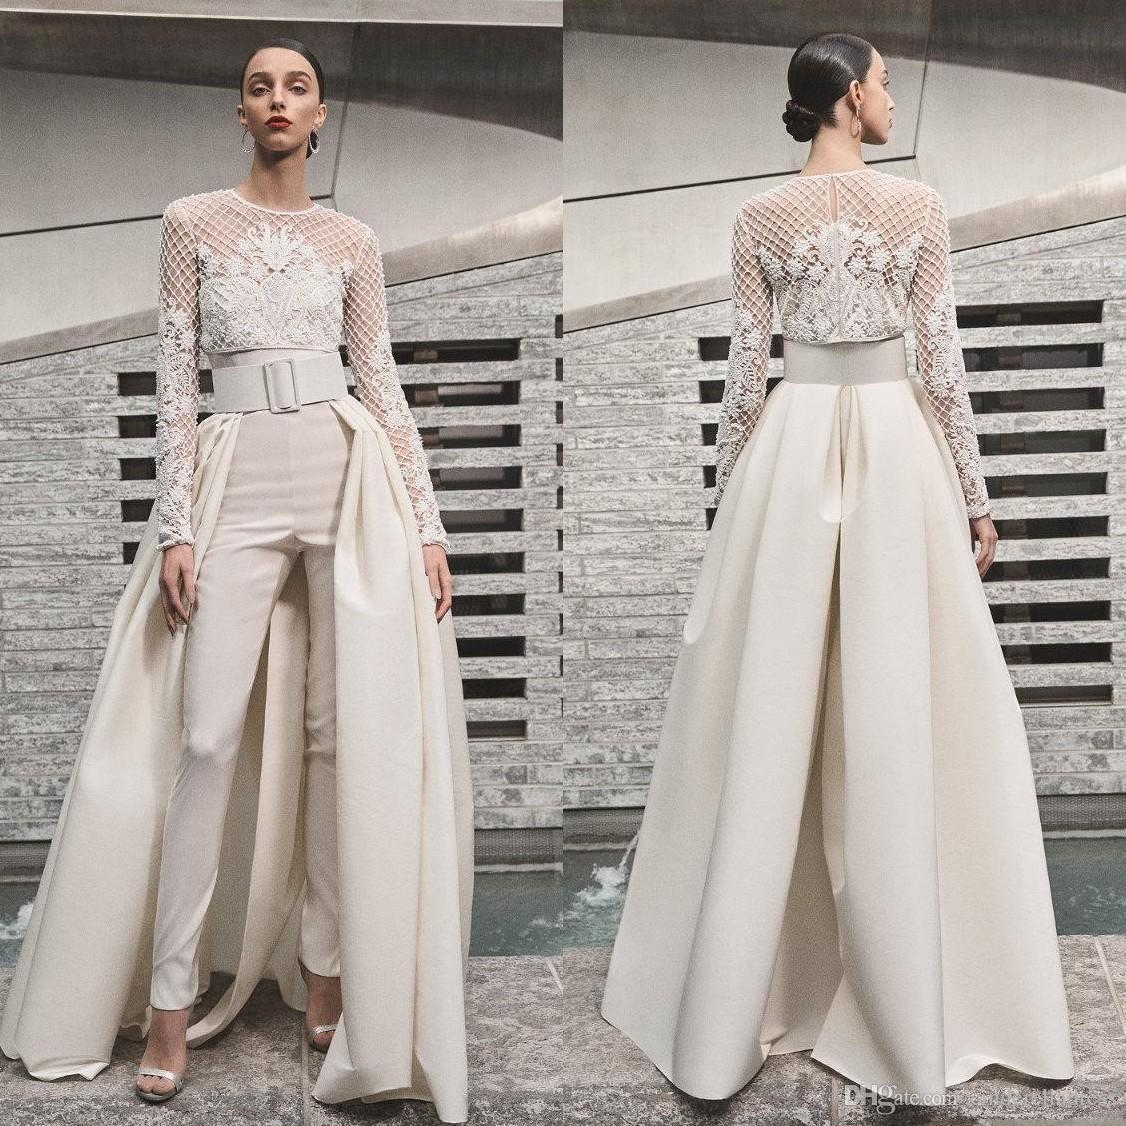 2019 Elegant Beach Wedding Dresses Jumpsuits With Detachable Skirt Satin Sweep Train Sweetheart Country Bridal Gowns With Jacket Long Sleeve